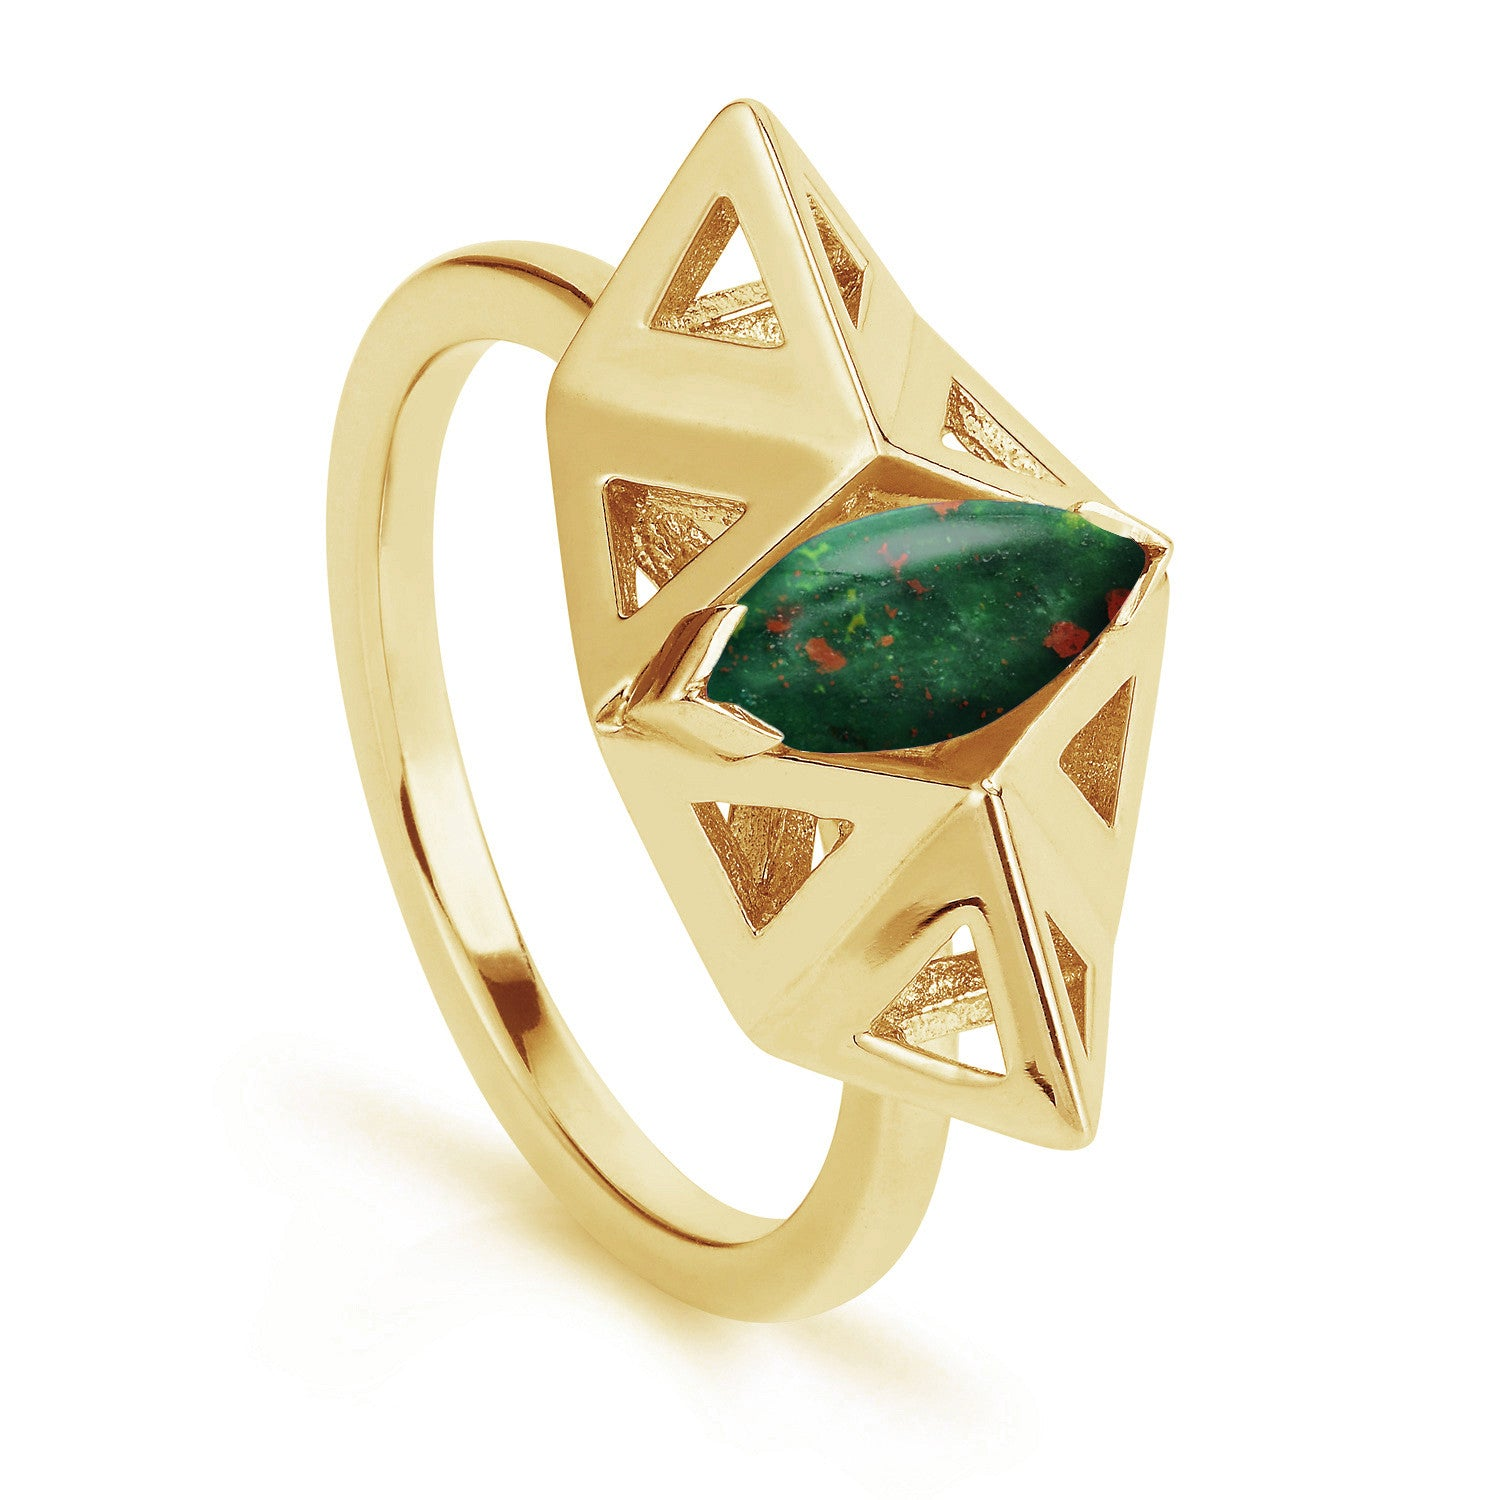 A geometric handmade ring design, made in the London Rocks workshop from yellow gold plated silver and a marquise cut bloodstone to its centre